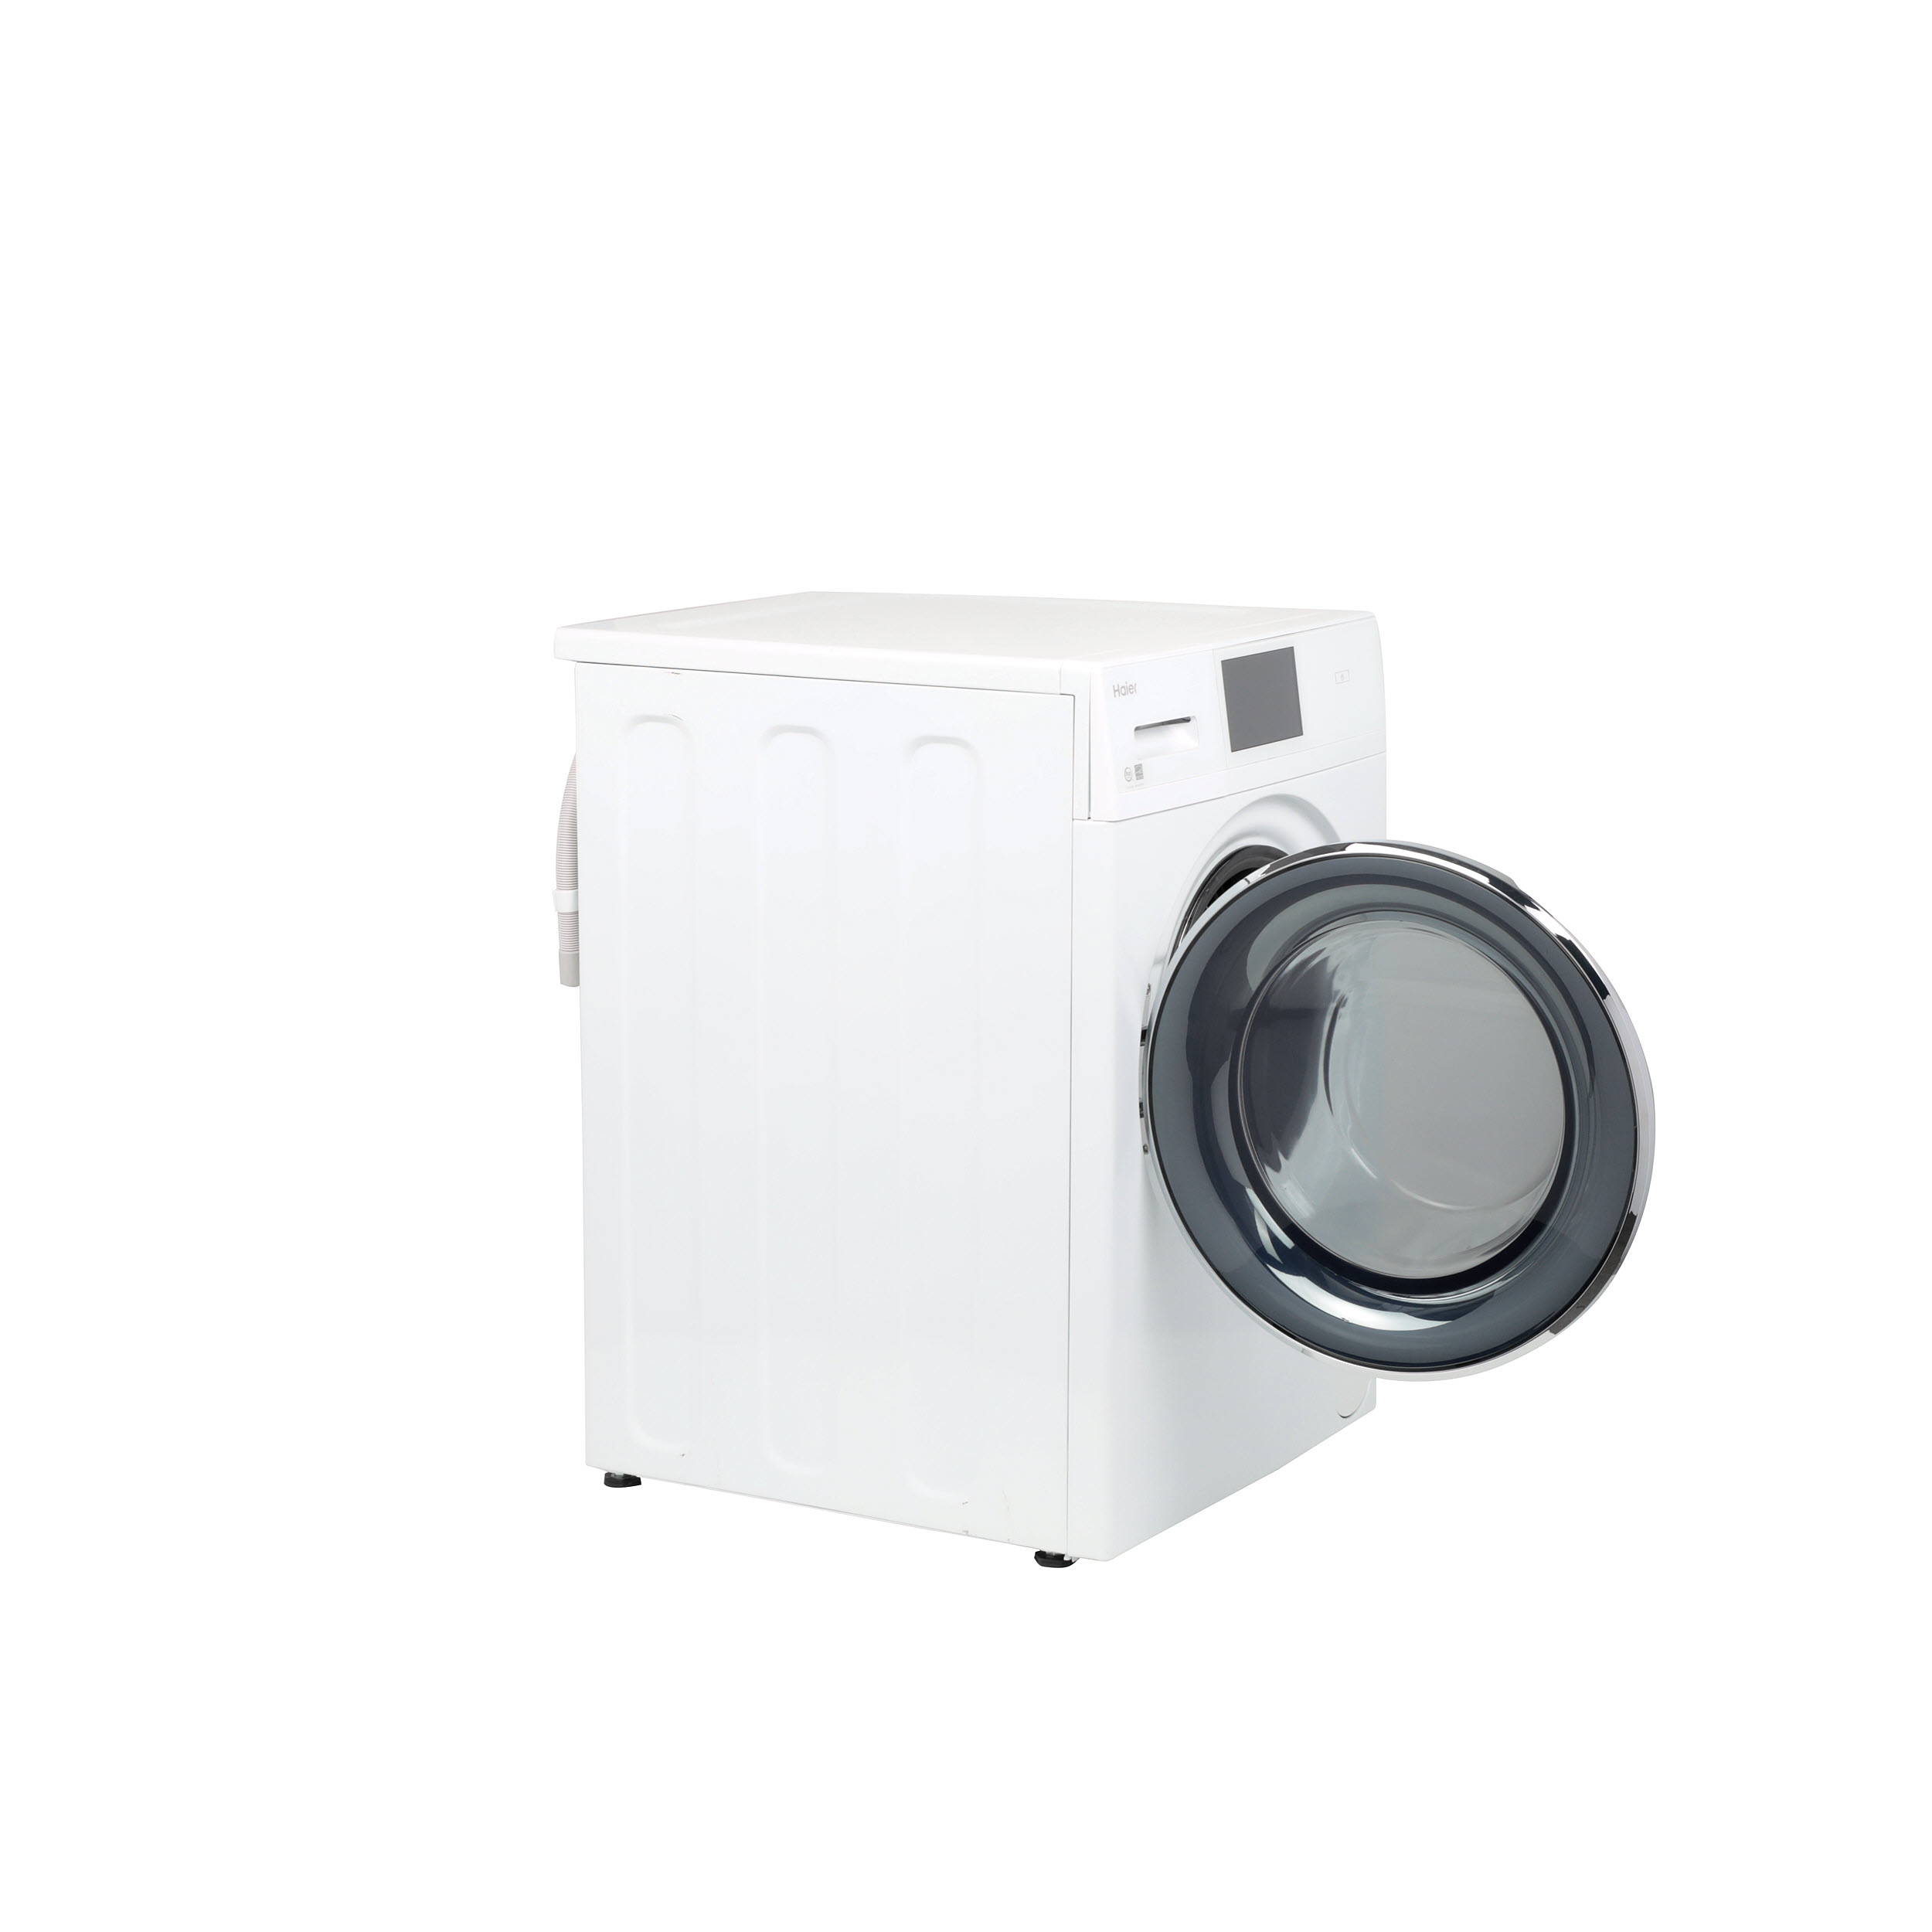 Model: QFW150SSNWW | Haier 2.4 Cu. Ft. Smart Frontload Washer